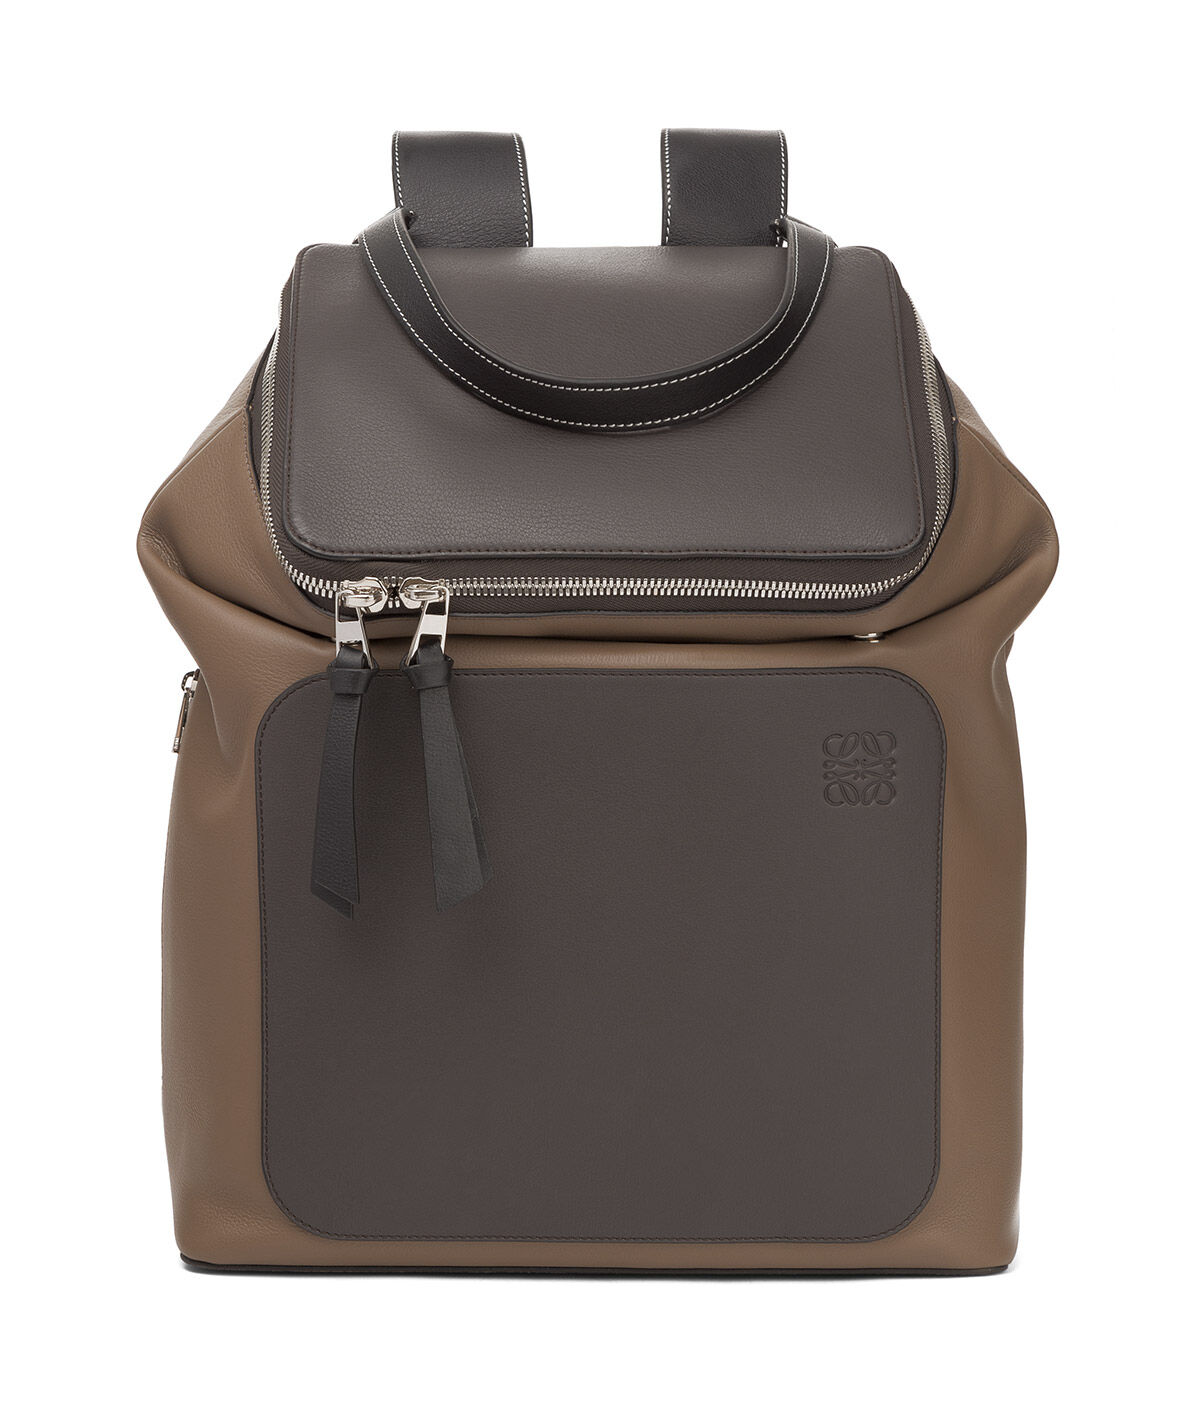 Outlet Locations Cheap Price Sale Very Cheap Goya backpack - Brown Loewe For Cheap mUpVsQK7B